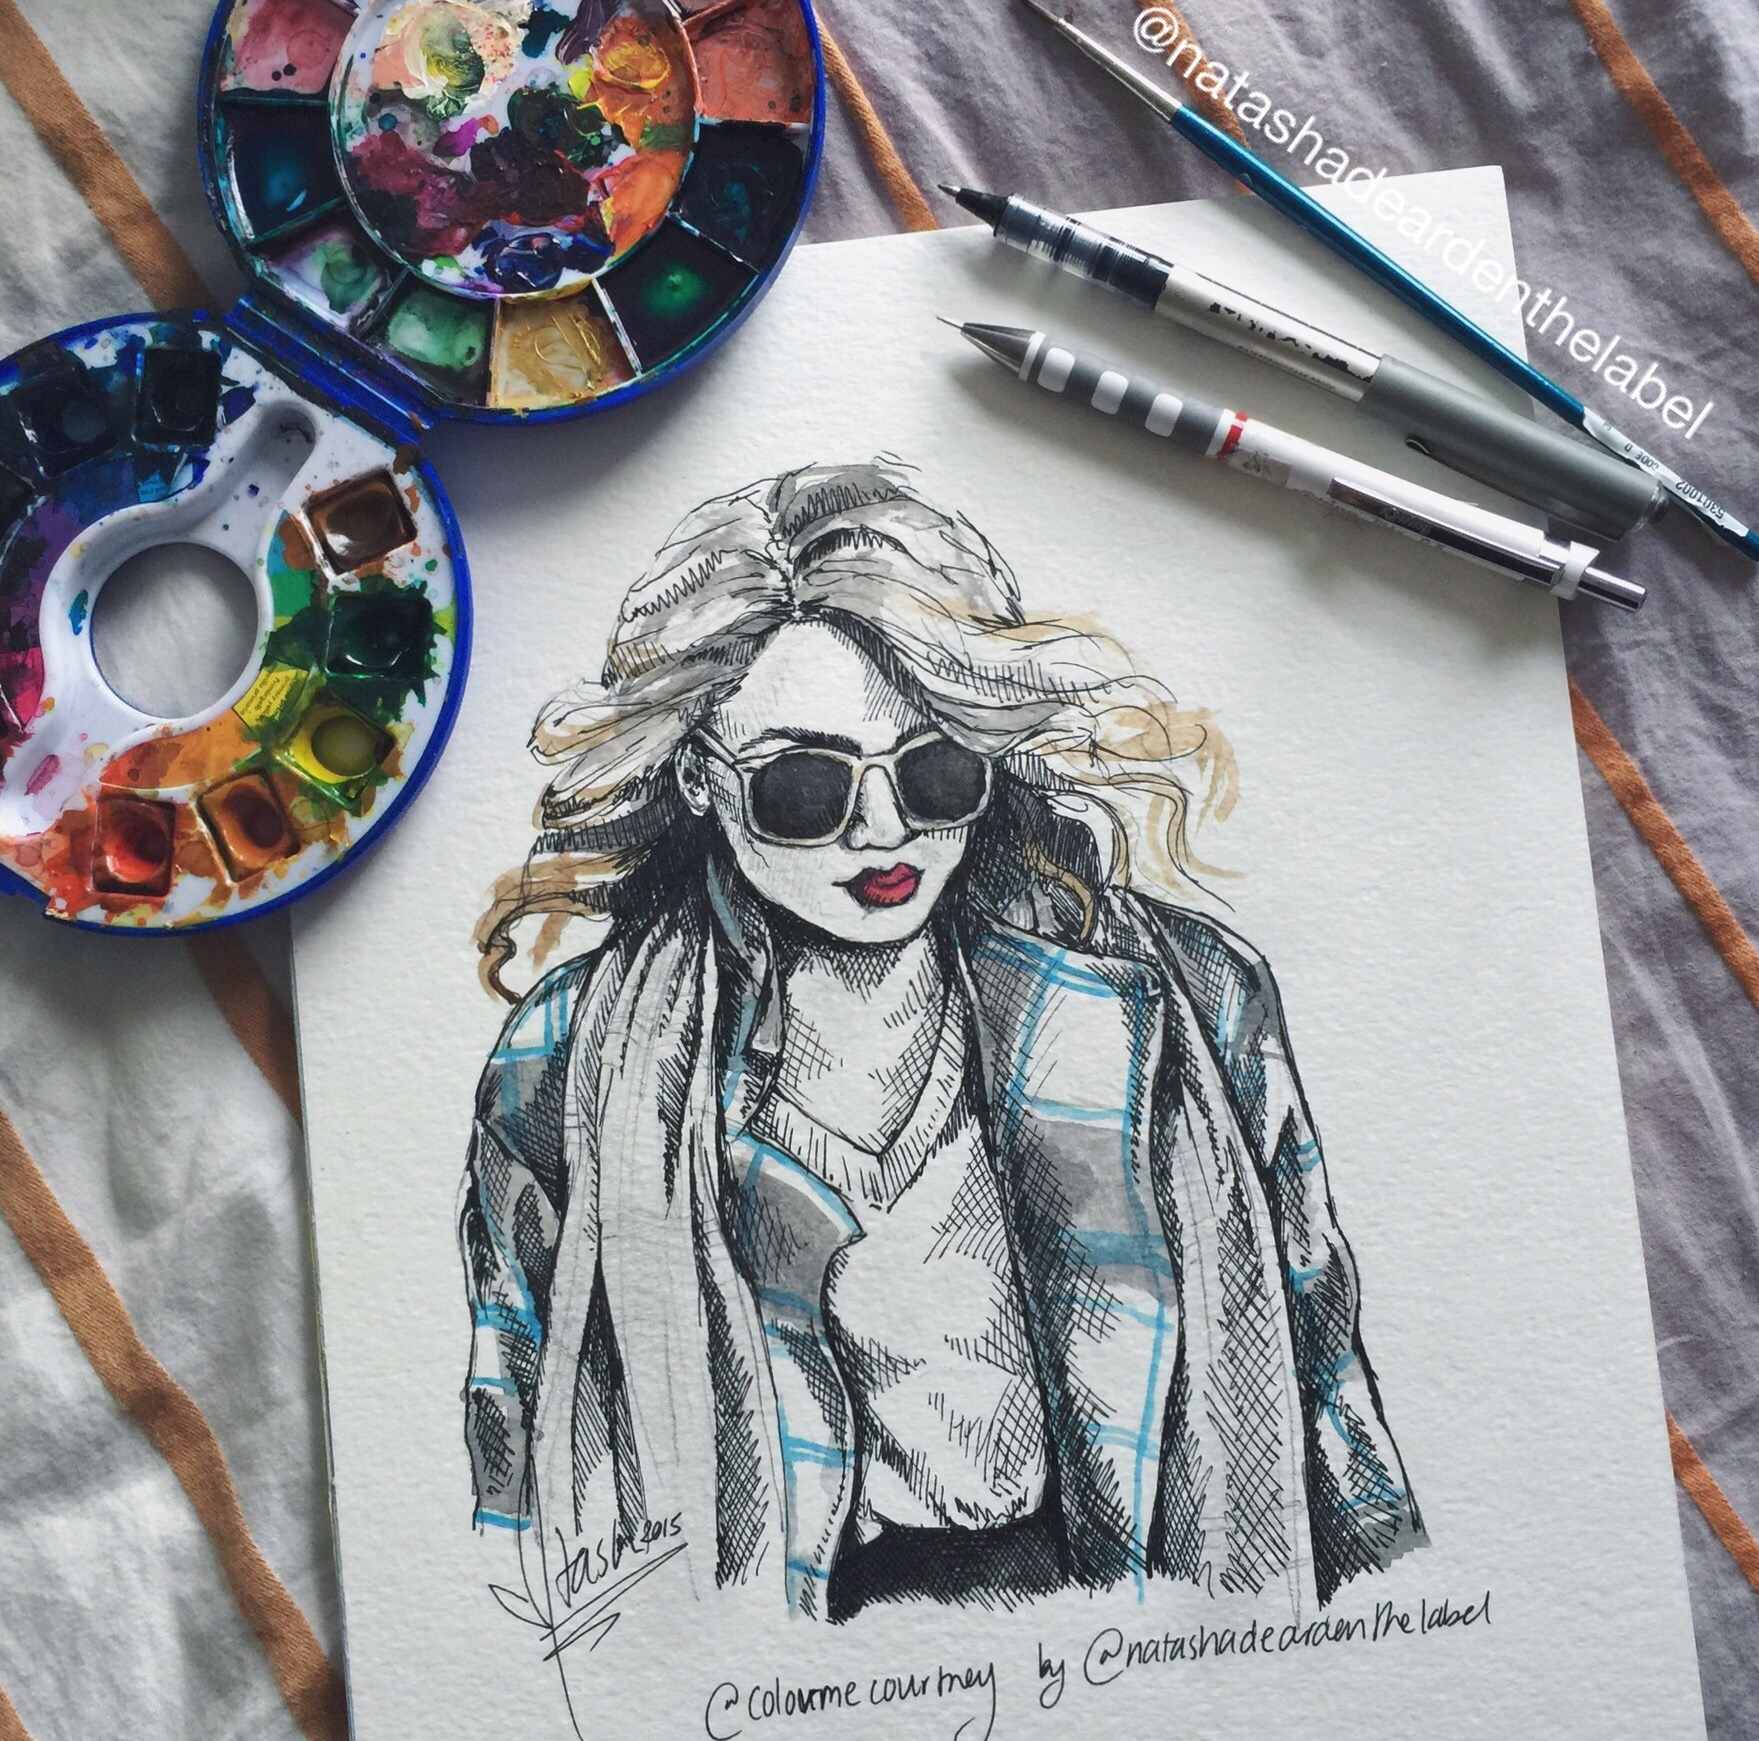 illustration of fashion blogger Color Me Courtney by Natasha Dearden http://natashadearden.com